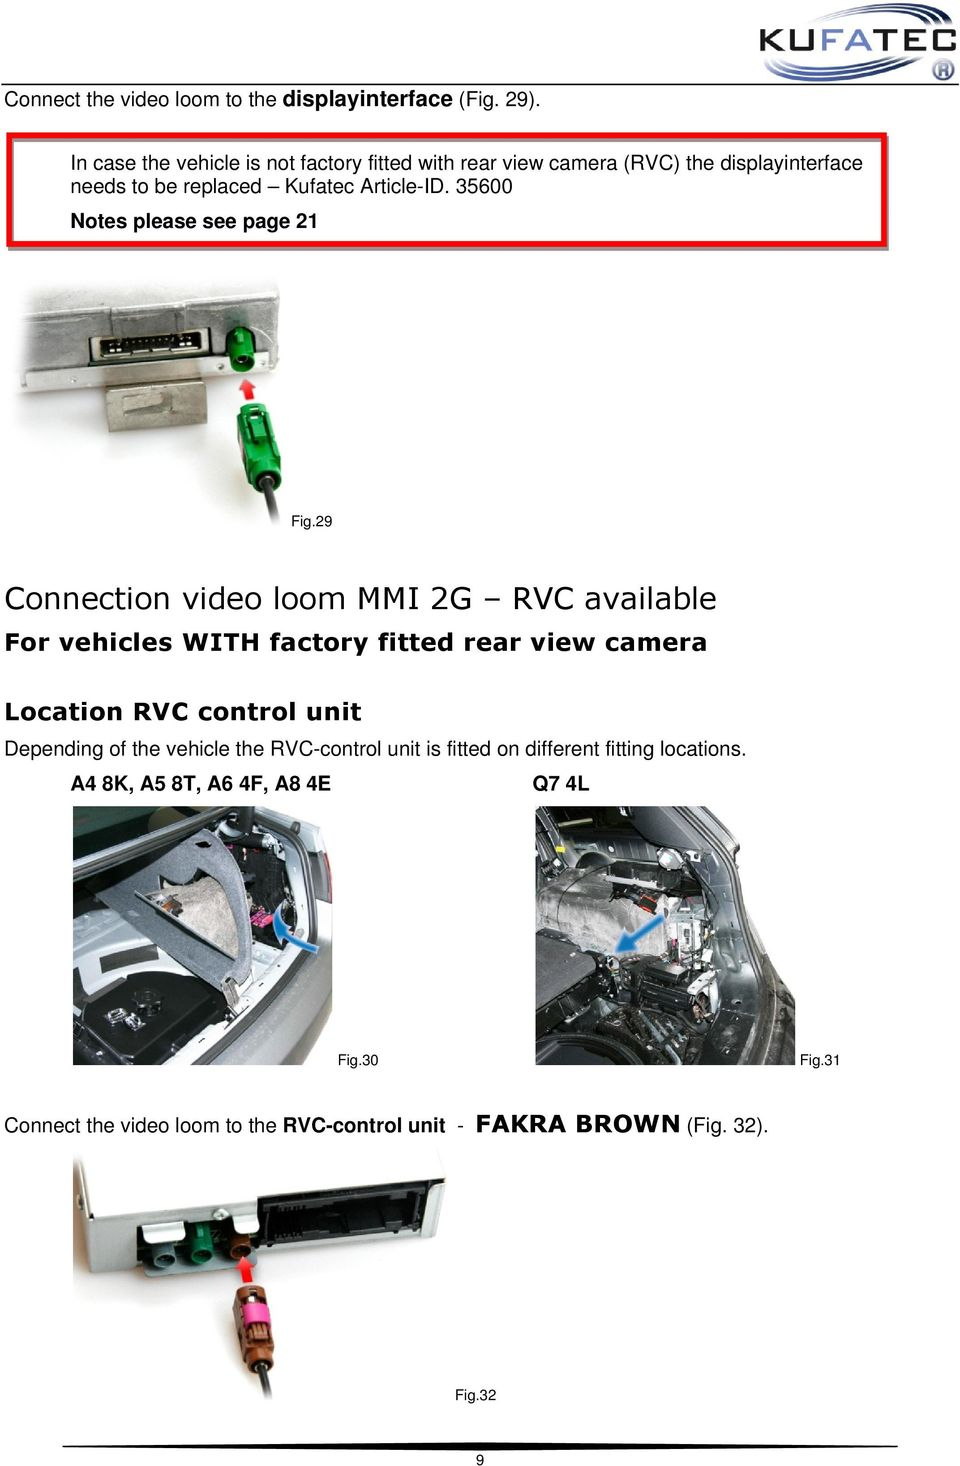 Installation Manual Multimedia Adapter Audi Pdf A6 Mmi Wiring Diagram 35600 Notes Please See Page 21 Fig